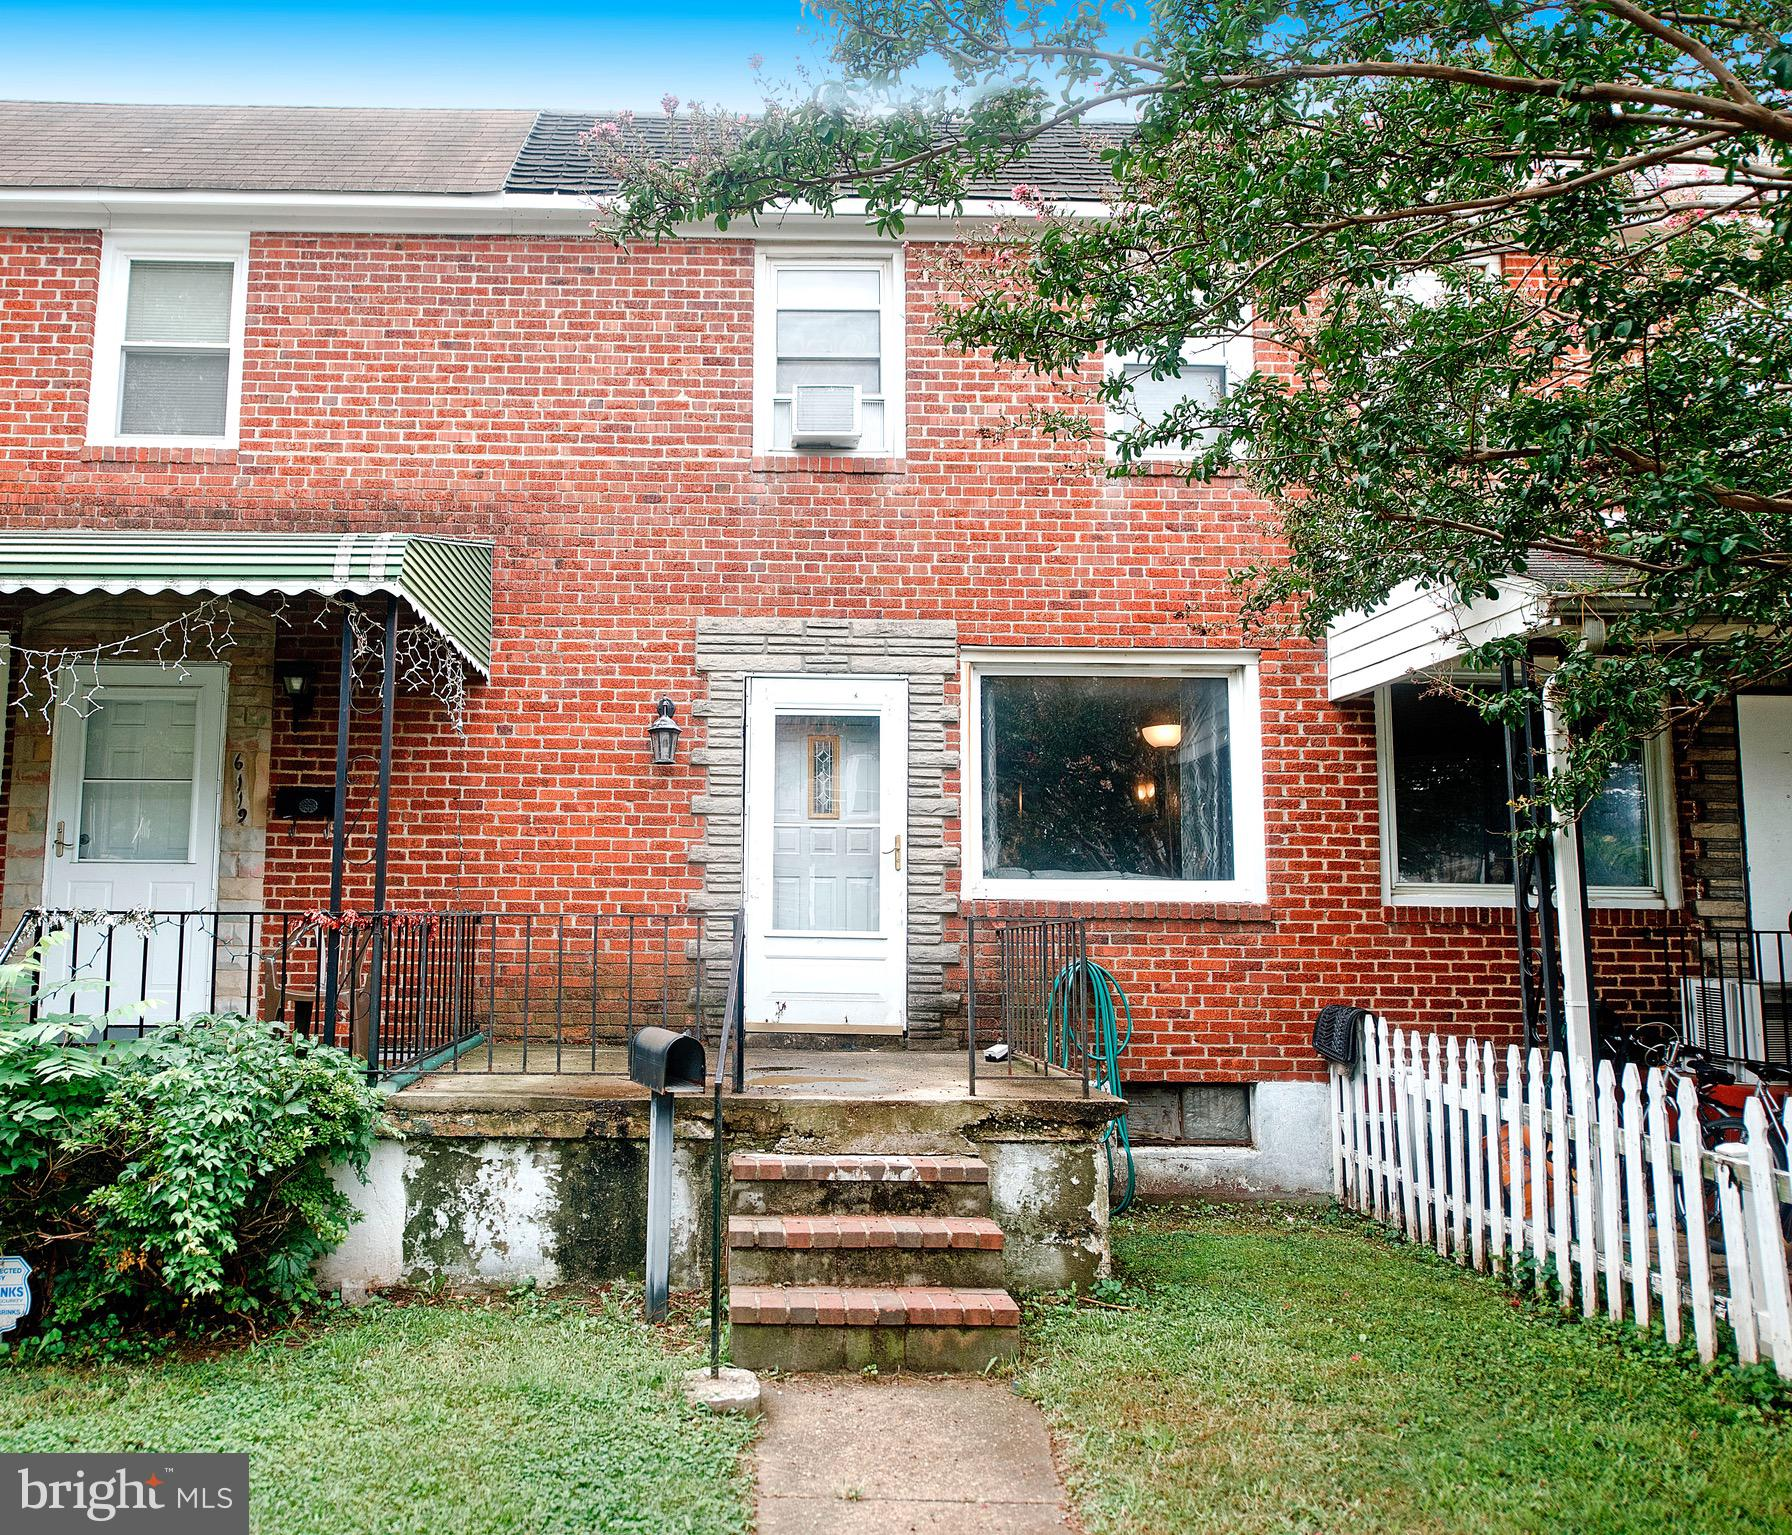 Welcome Home! This home is perfectly located near shops, mass transit and downtown Baltimore. Three bedrooms, 1 1/2 baths. The first floor boasts an oversized living room, dinning room and kitchen. The deck over looks the spacious back yard. Up the stairs are the three generously sized bedrooms and updated bath.  Lower level can easily be used as an in-law suite or separate apartment with kitchenette and half bath. The back yard is fenced and perfect for a dog to stretch their legs. Schedule your showing today before this home is SOLD!